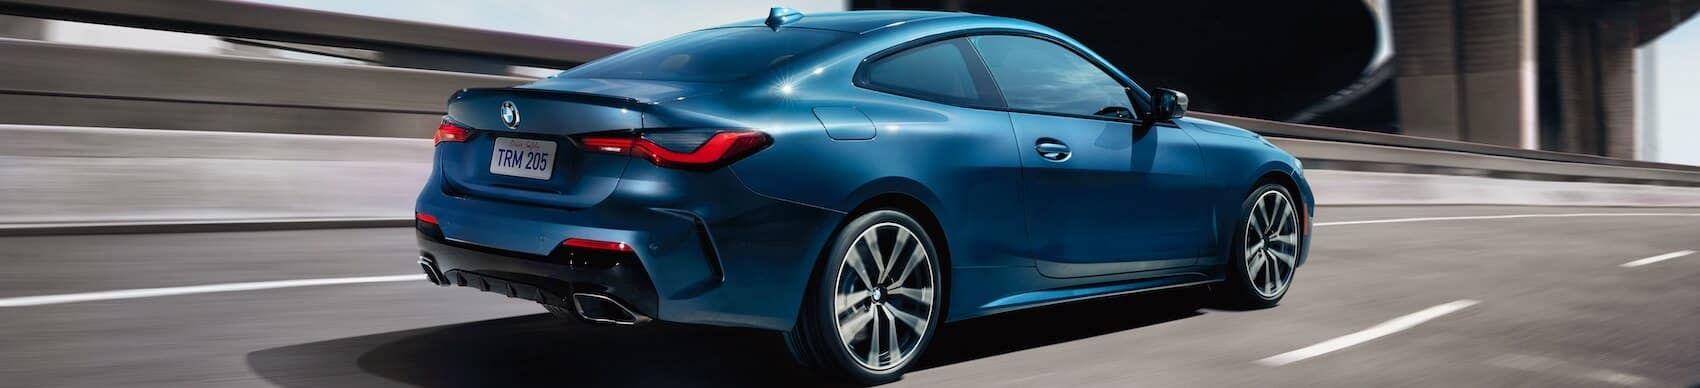 BMW 4 Series Reviews